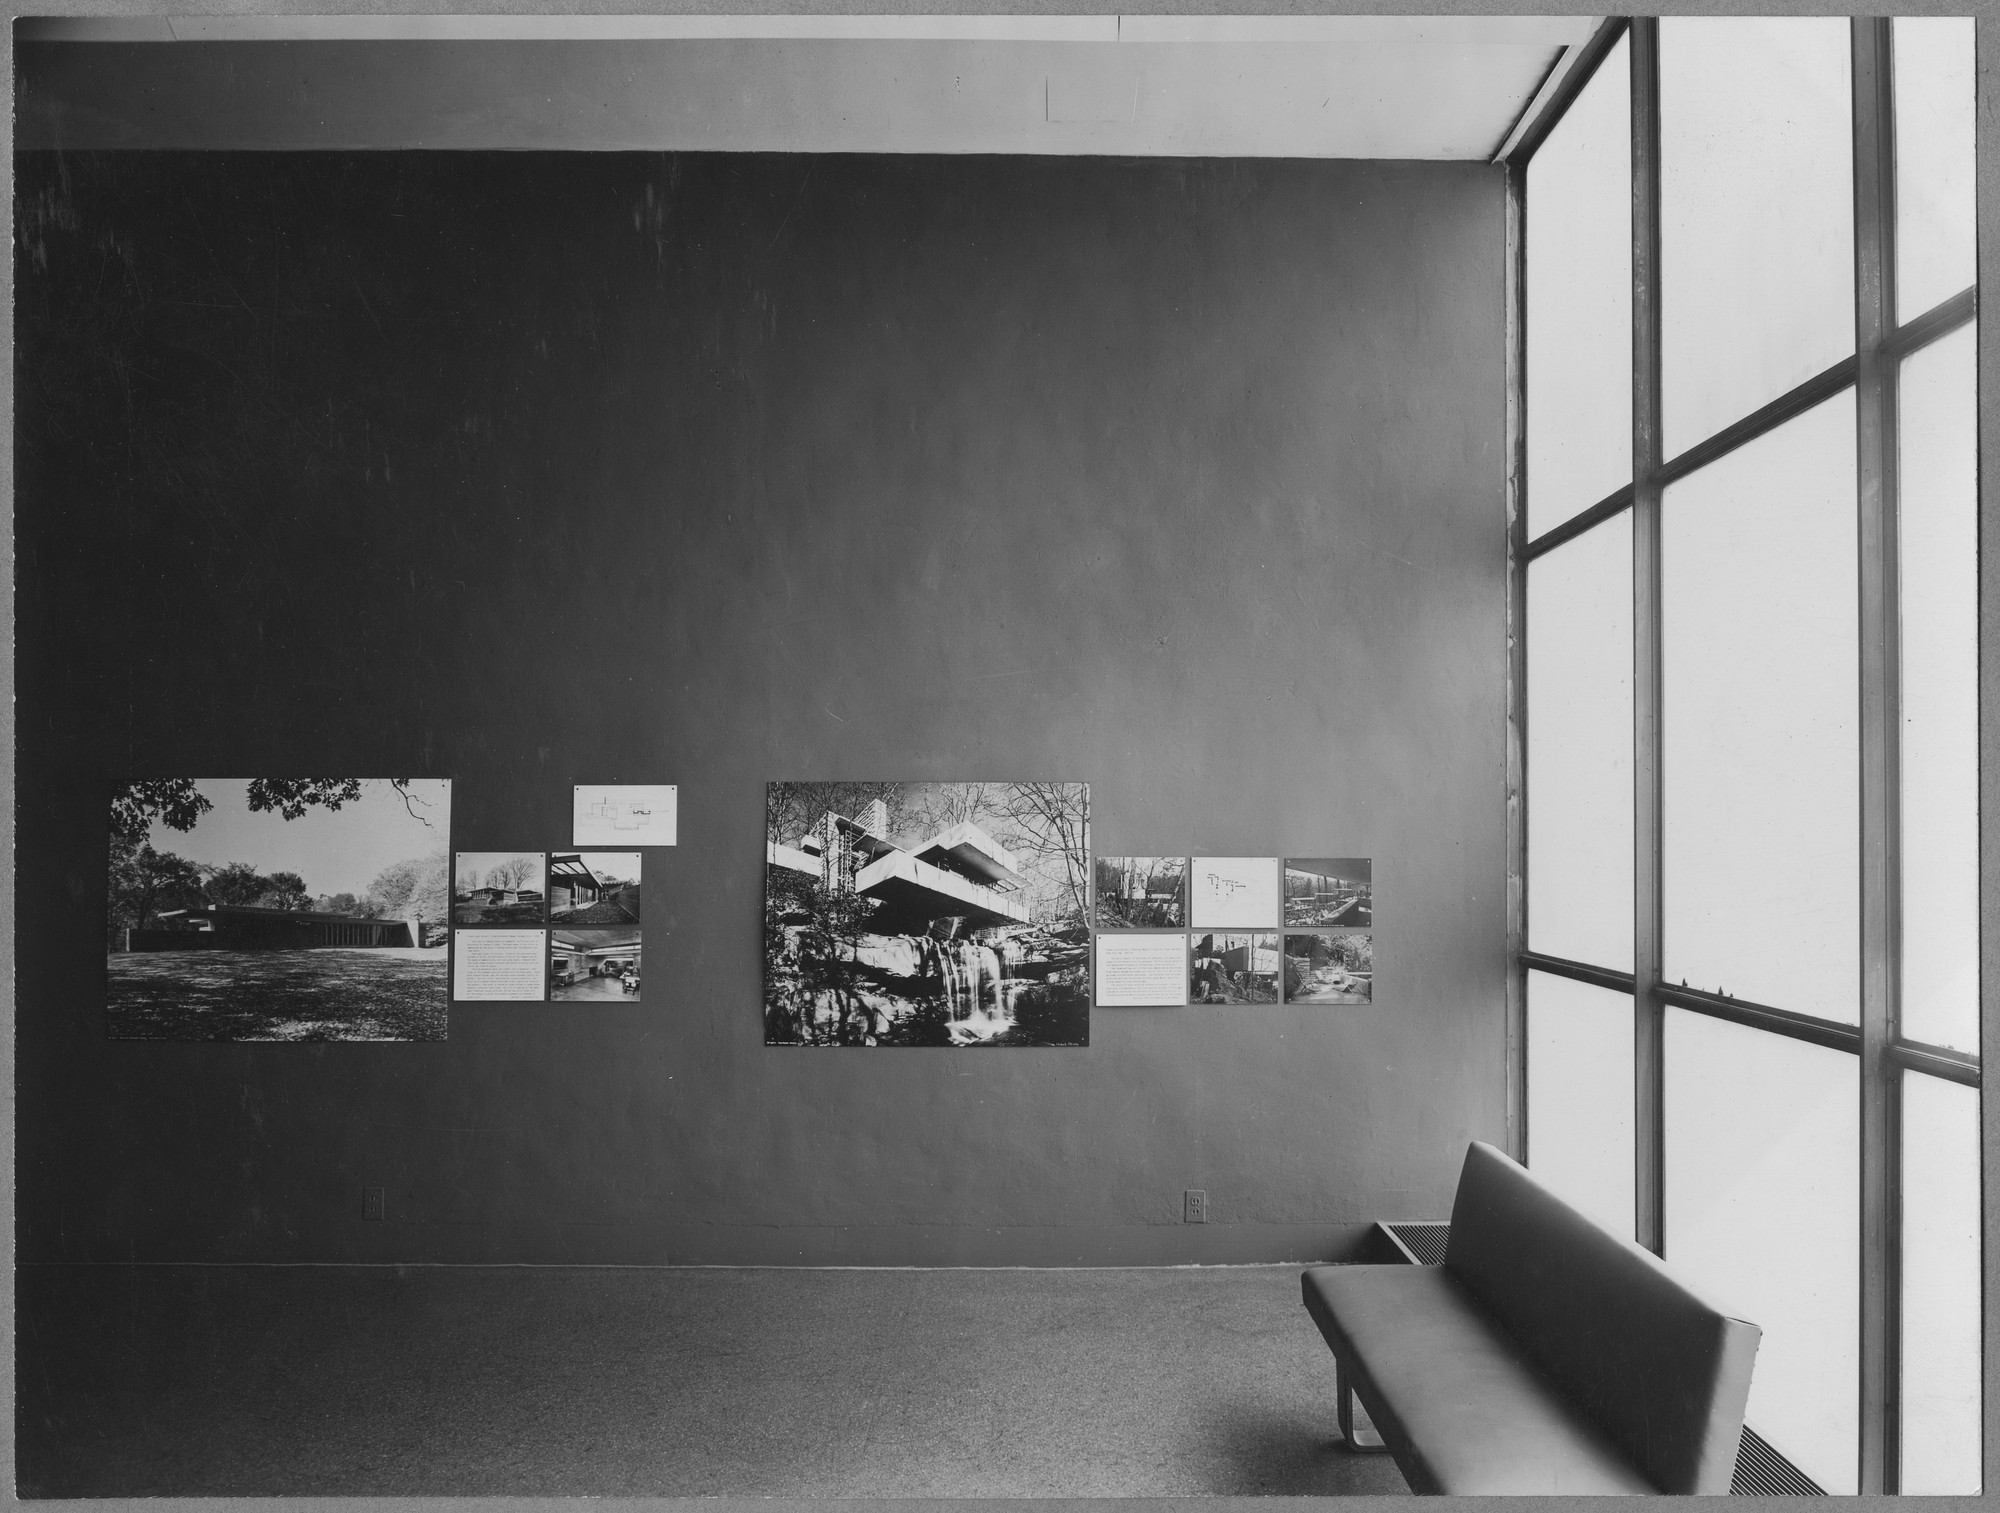 "Installation view of the exhibition, ""Built in the U.S.A., 1932-44"" in the series, ""Art in Progress:  15th Anniversary Exhibition"" May 24, 1944–October 22, 1944. Photographic Archive. The Museum of Modern Art Archives, New York. IN258c.1. Photograph by Soichi Sunami."